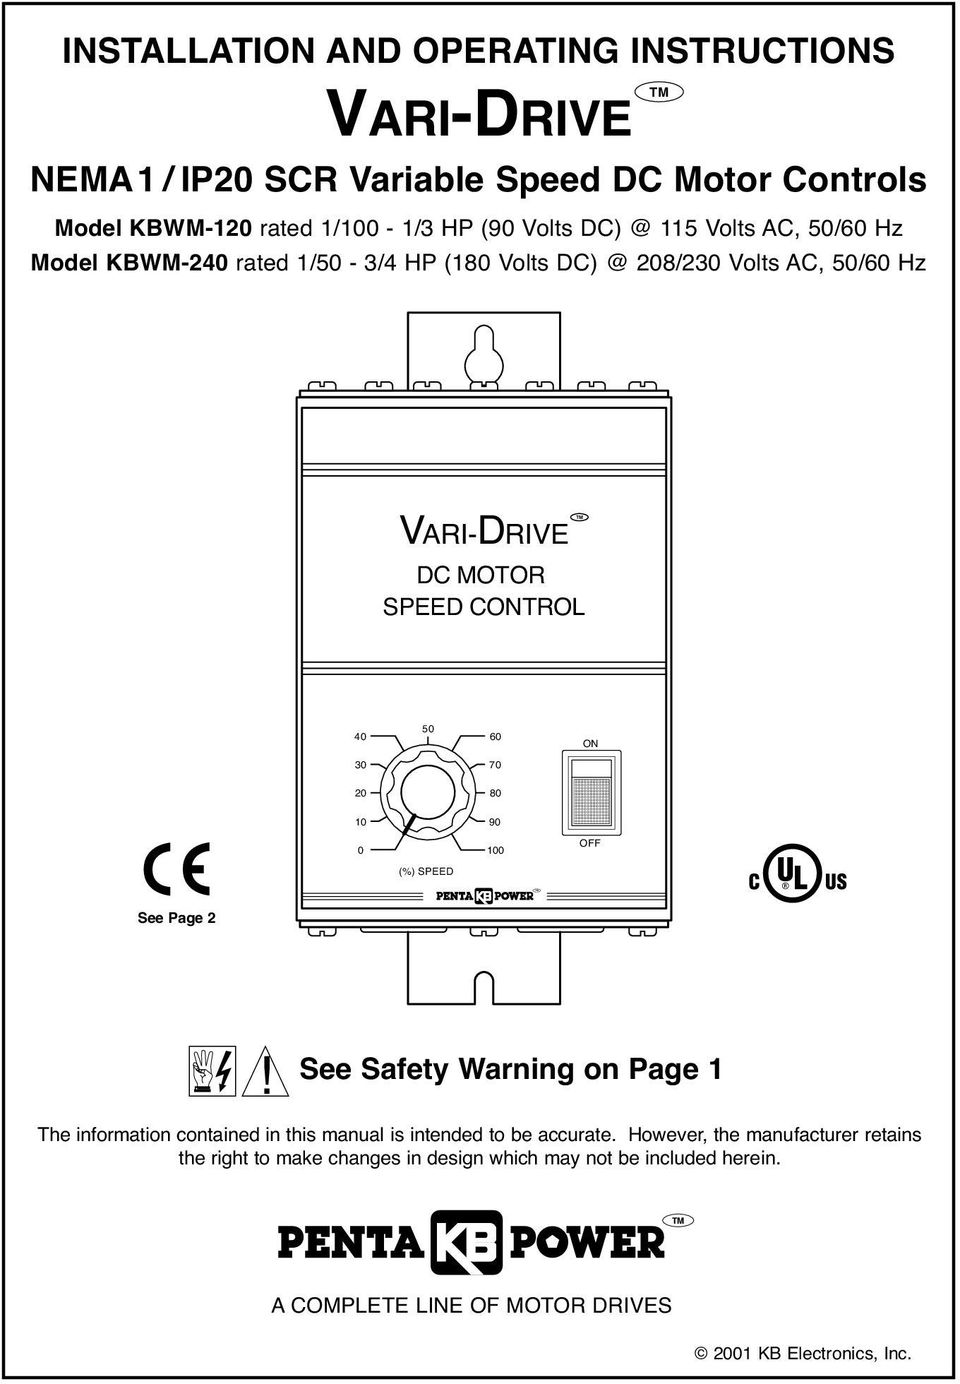 Vari Drive Nema1 Ip20 Scr Variable Speed Dc Motor Controls Pdf Ac Picture Control Of Using 30 70 20 80 10 90 0 100 Off See Page 2